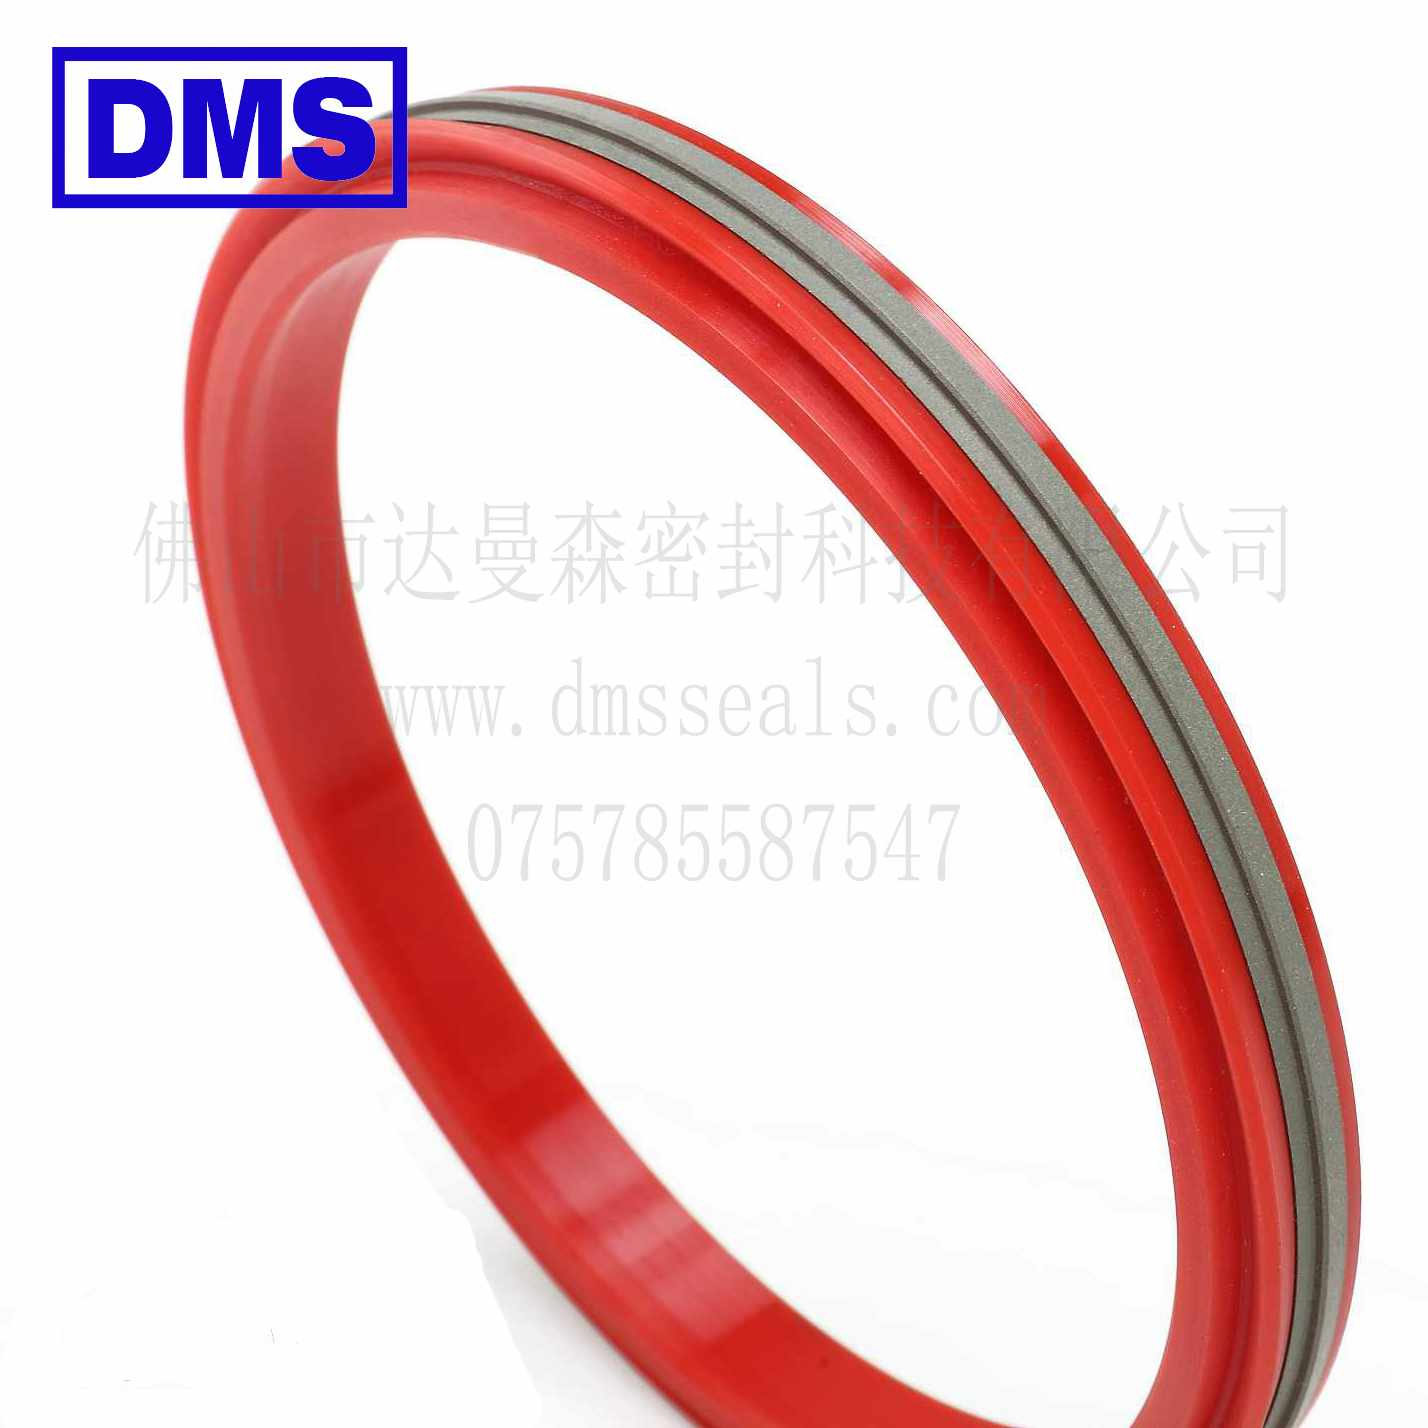 DMS Seal Manufacturer DDA - PTFE Hydraulic Piston Seal with NBR/FKM O-Ring Piston Seals image14